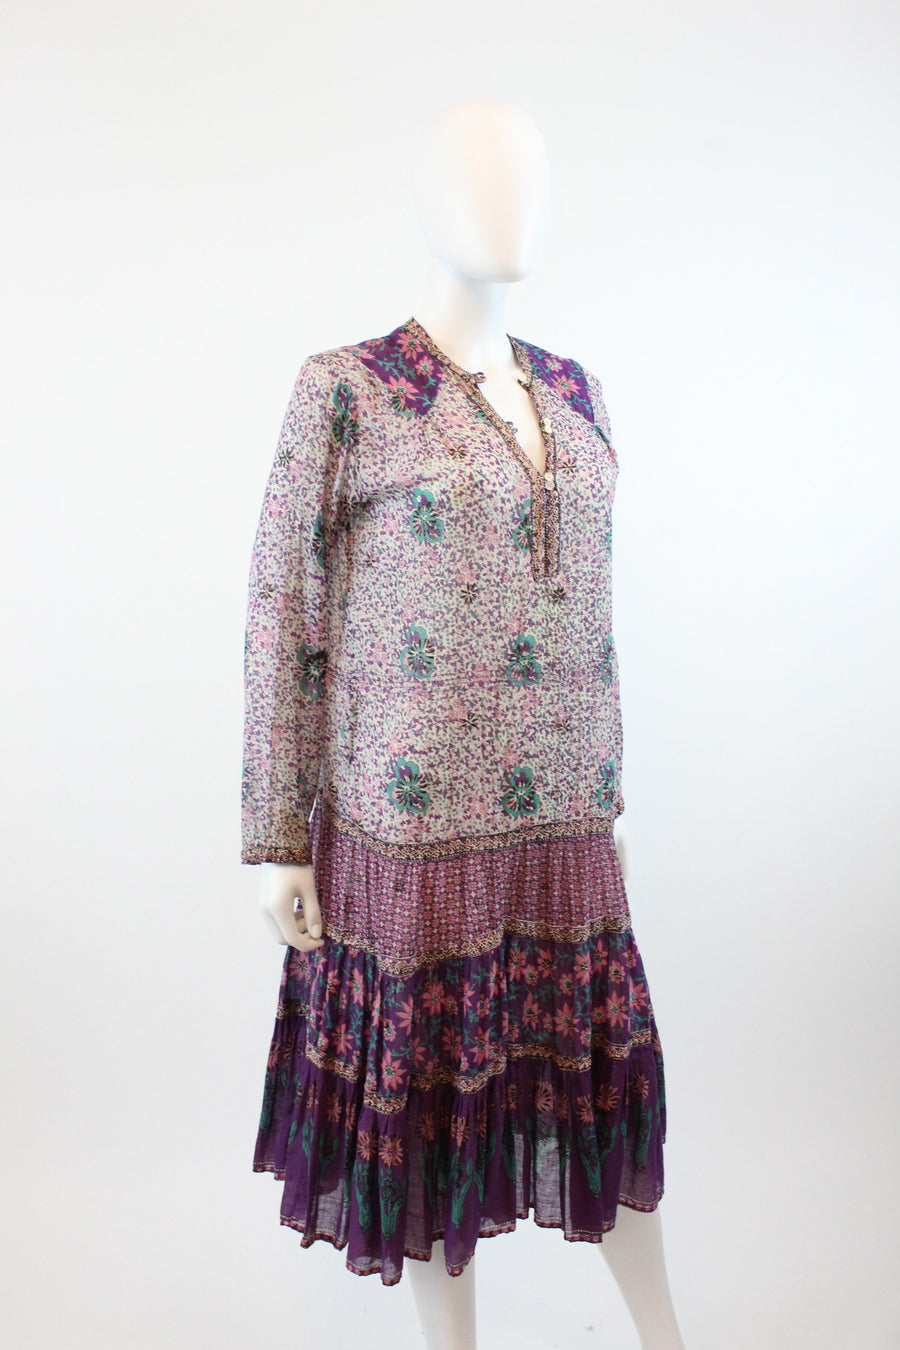 1970s Adini caftan cactus print small  | vintage indian cotton dress | 70s festival smock